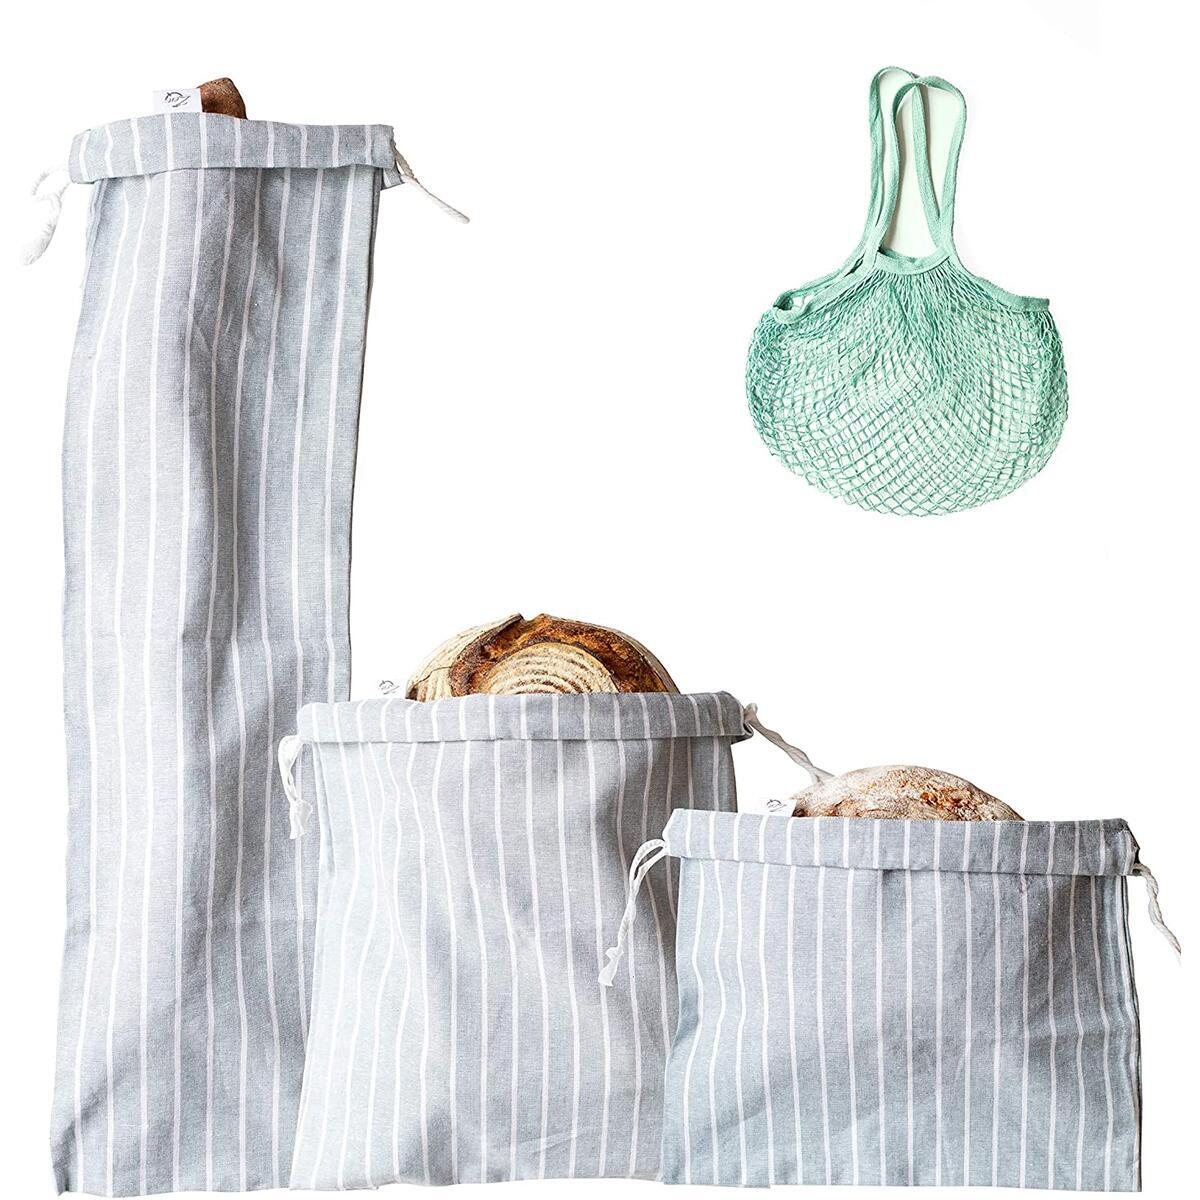 Bread Bags for Homemade Bread, Set of 3 Reusable Linen Bread Storage Bags with Ties + Gift Produce Bag for Groceries, Organic Bread Bags for Keeping Baguettes, Artisan Bread Fresh